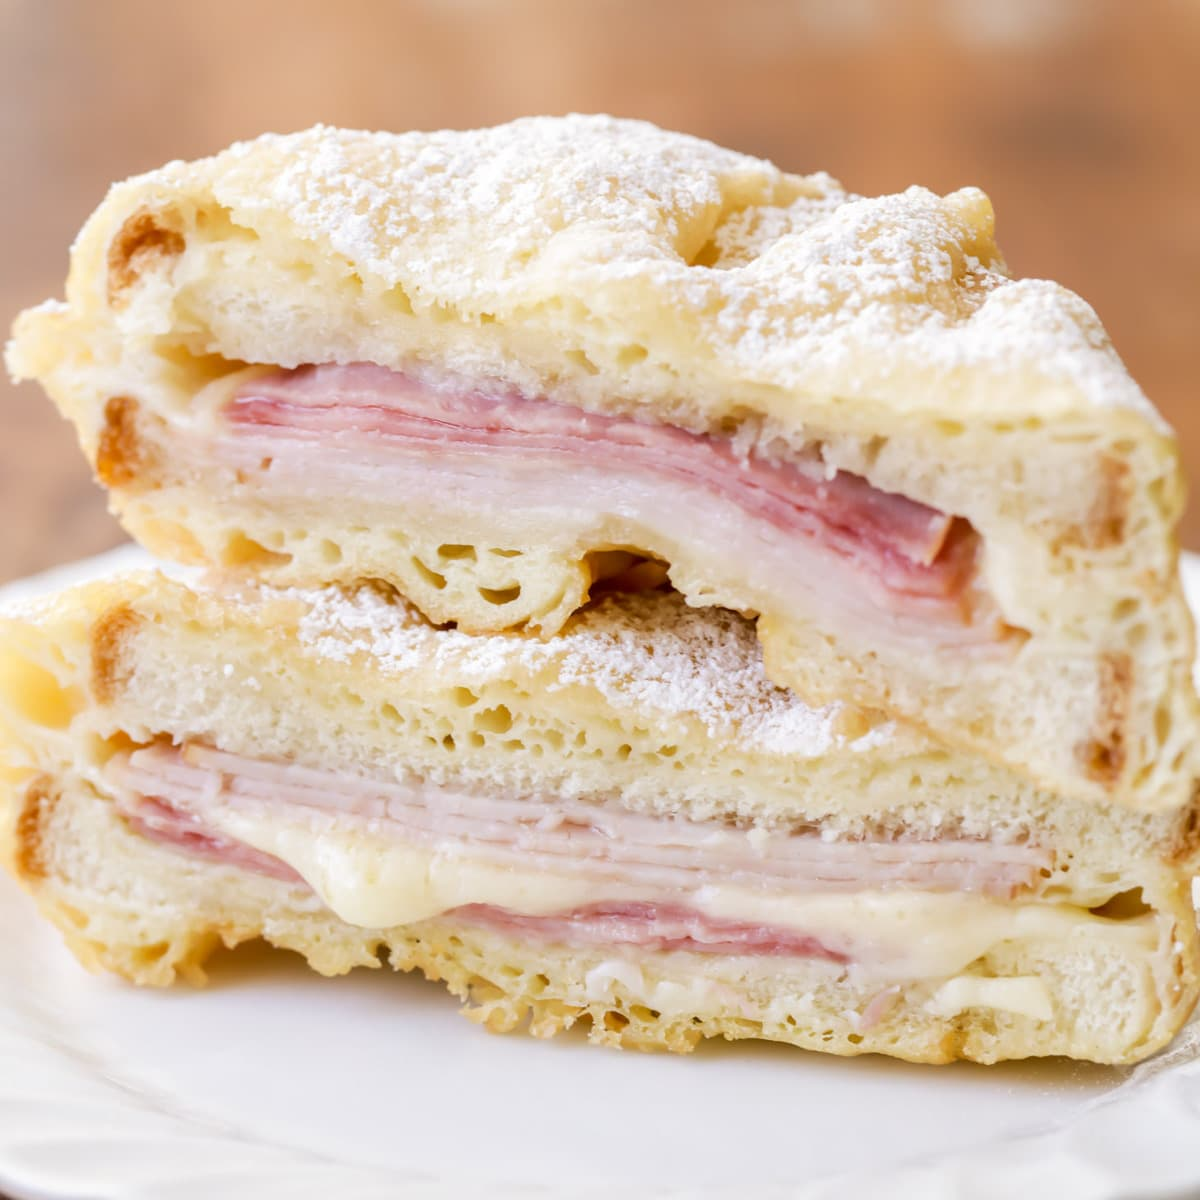 monte cristo sandwich cut in half and stacked on a white plate